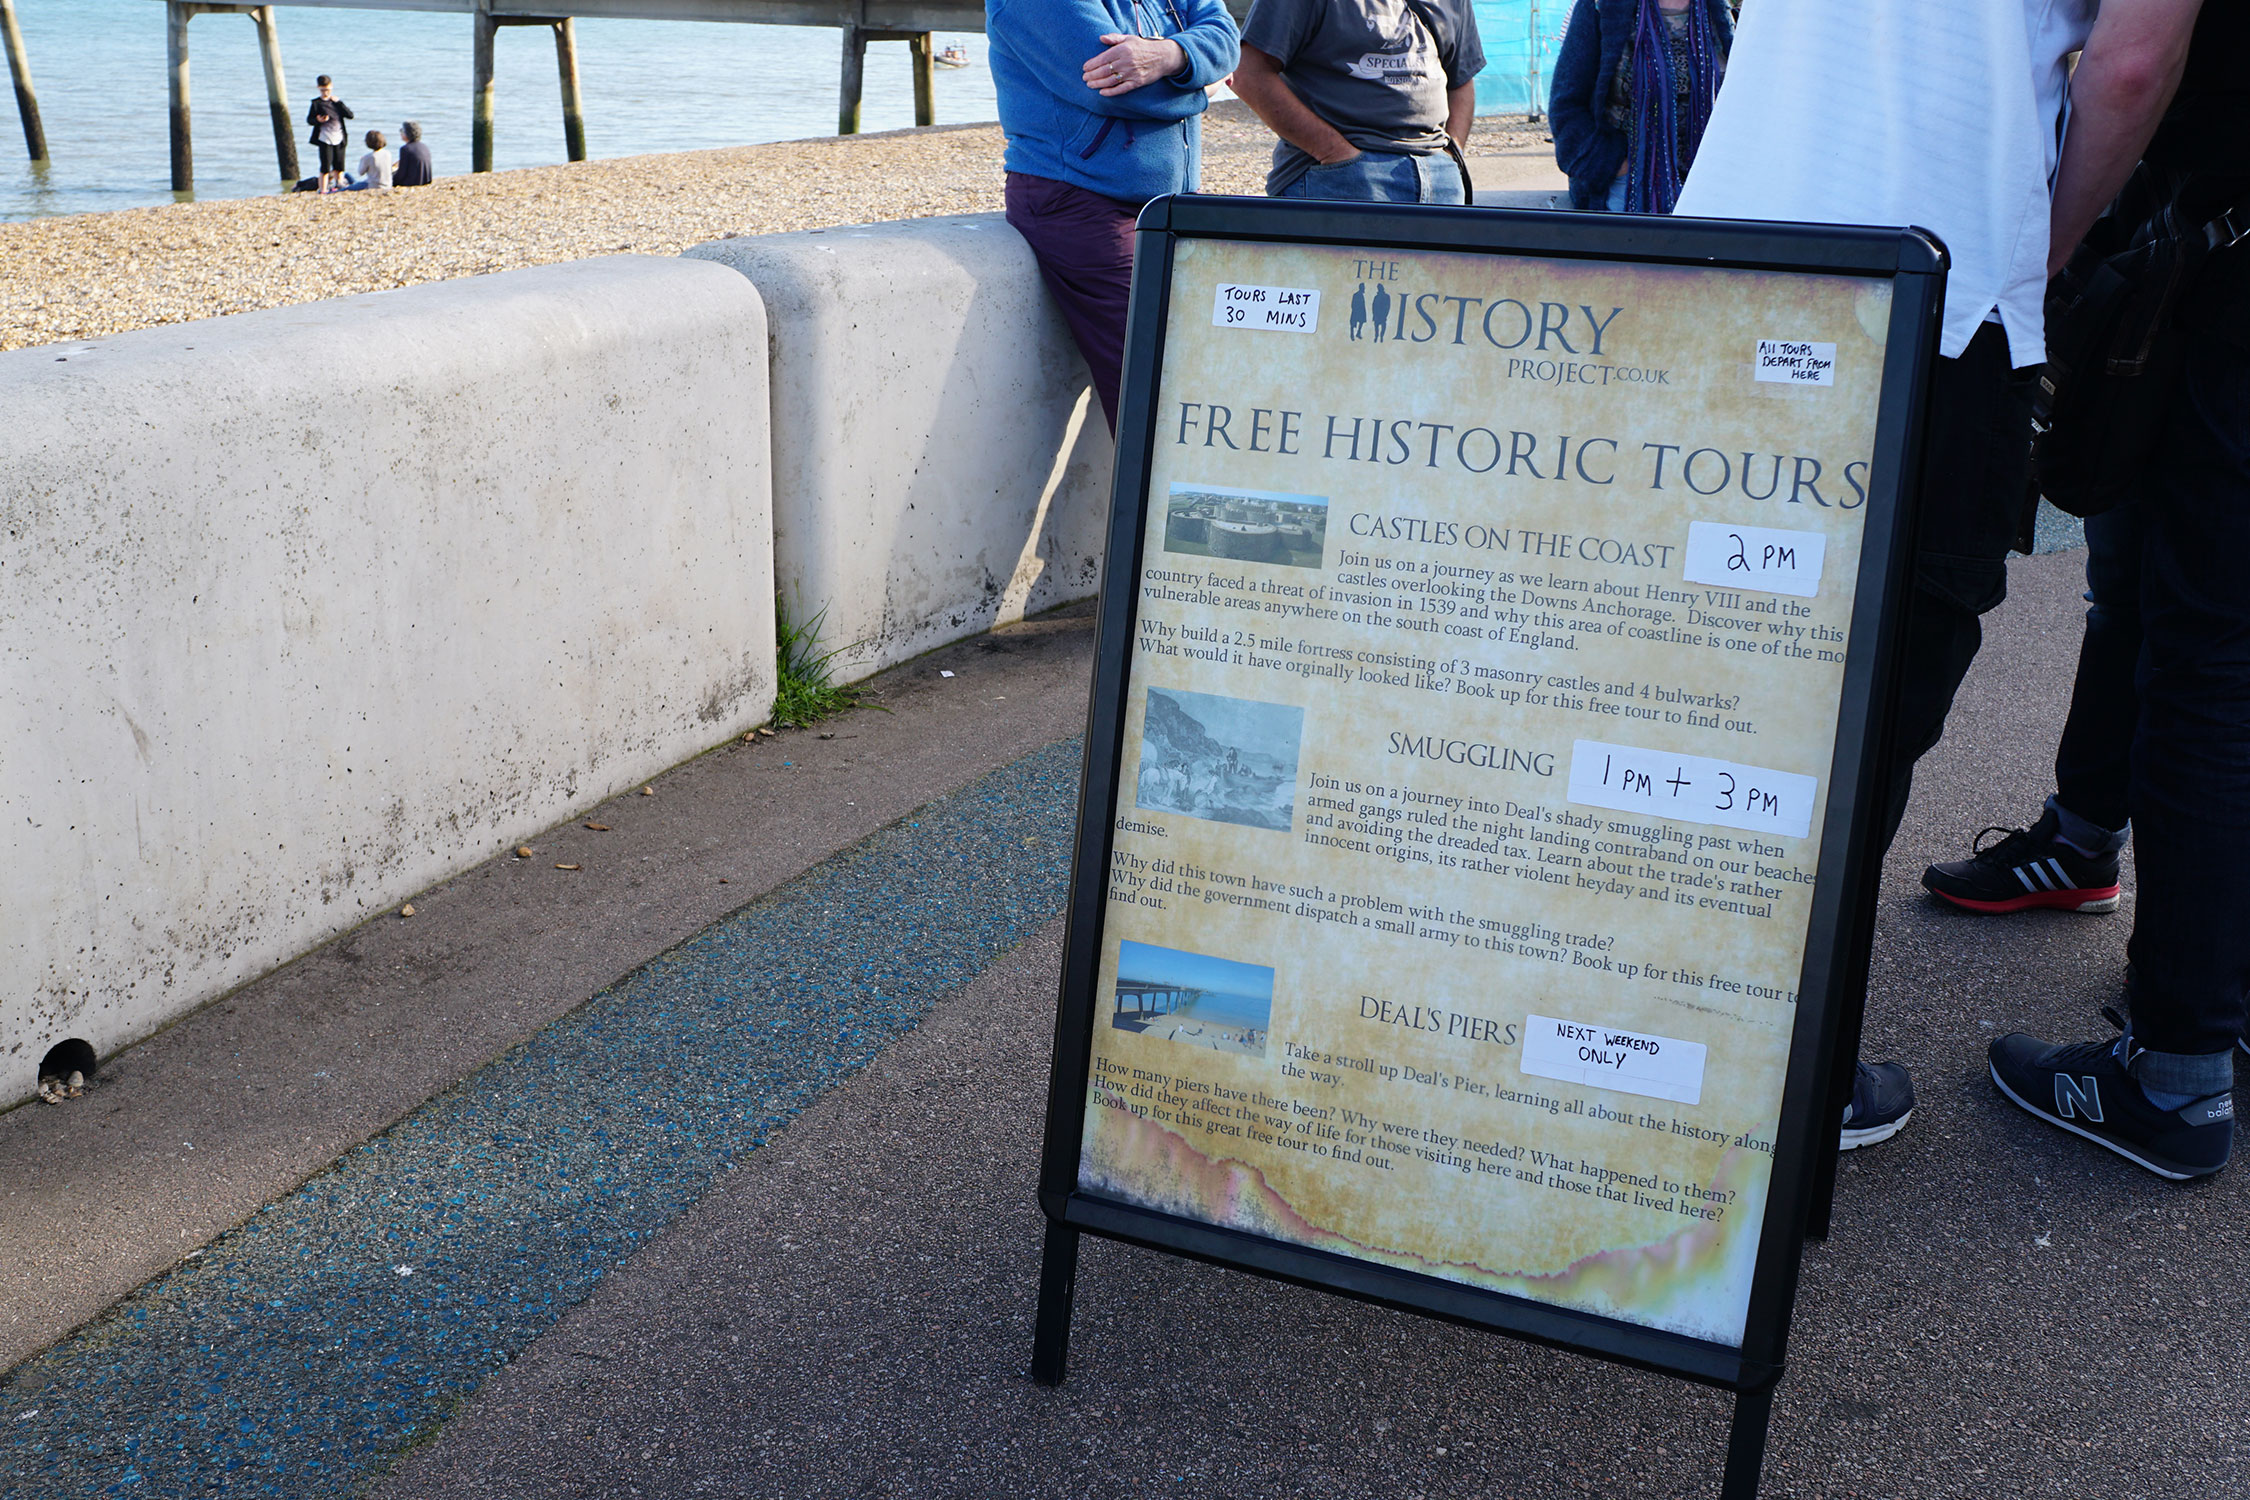 discover-deal-history-tours-3.jpg